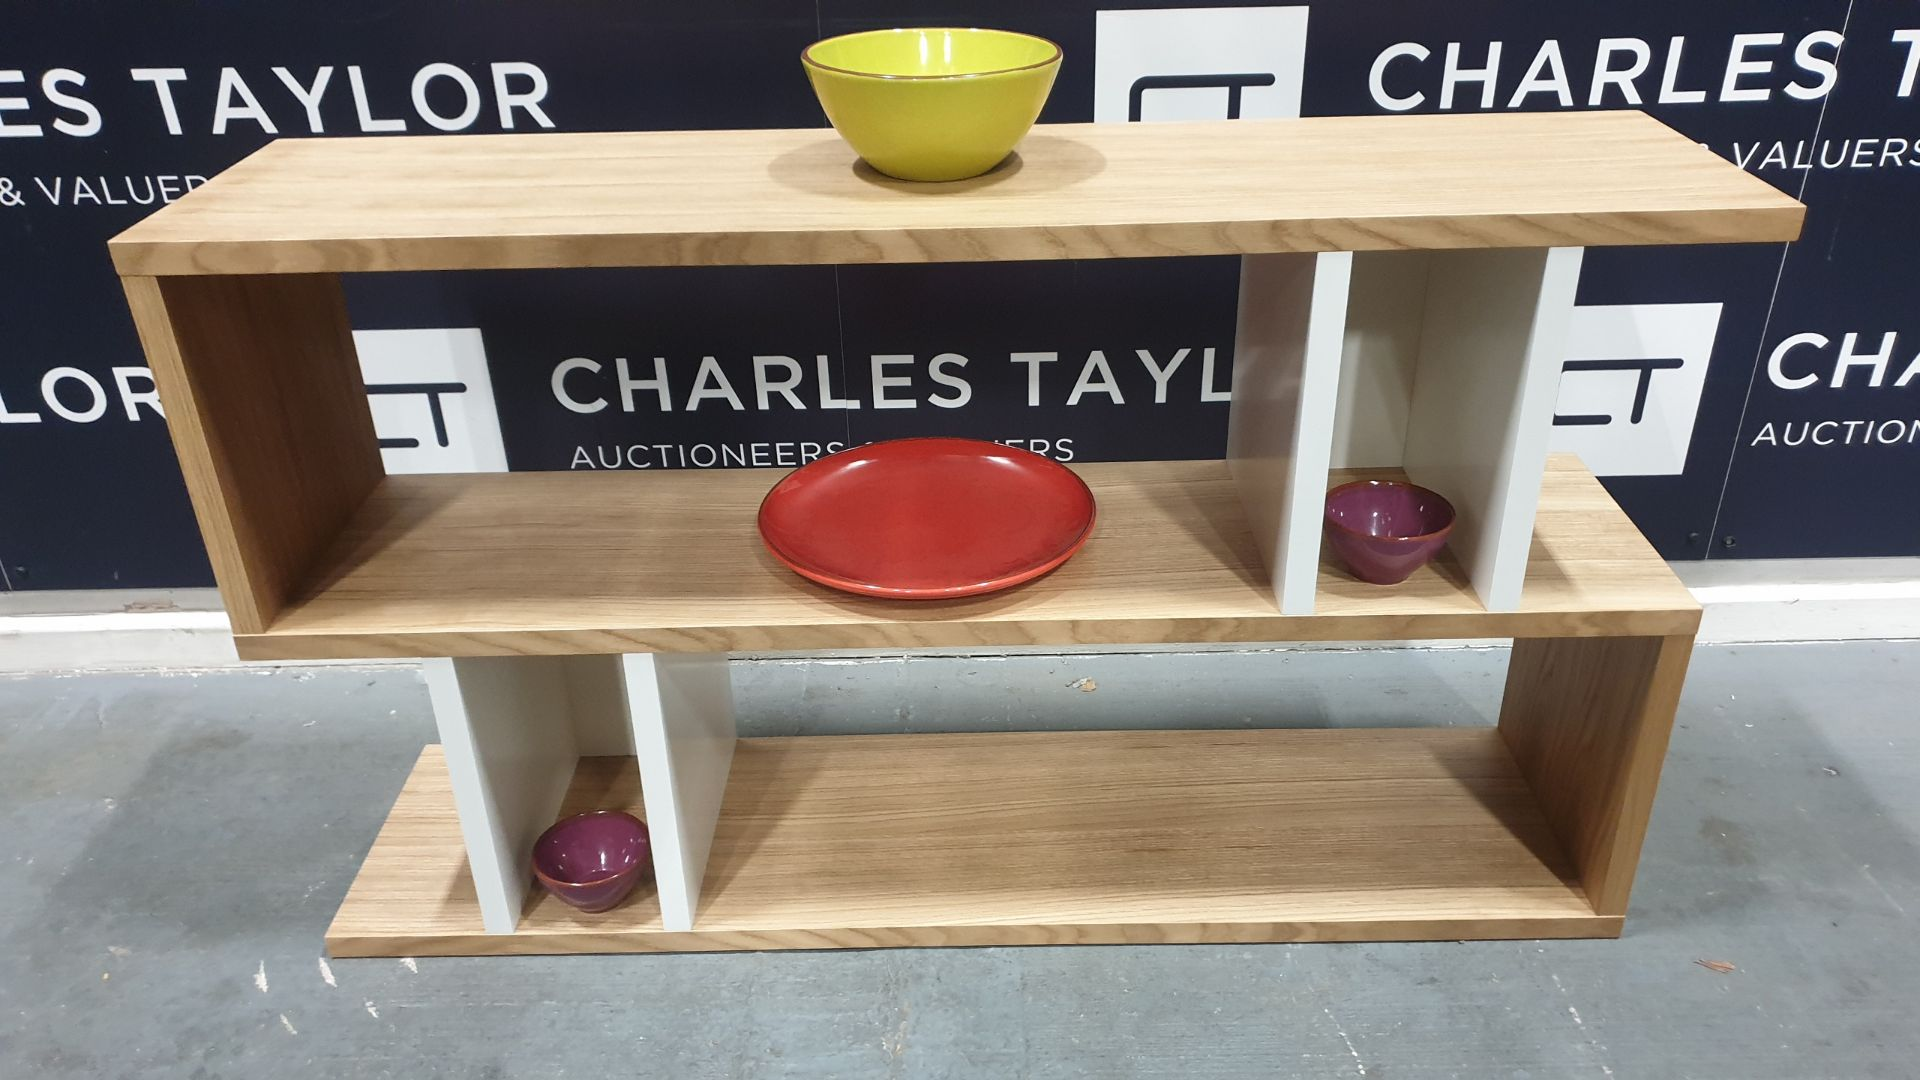 Lot 1077 - BRAND NEW BOXED CONTENT BY TERENCE CONRAN WOODEN COUNTER BALANCE, LOW SHELVING UNIT IN OAK/WHITE -